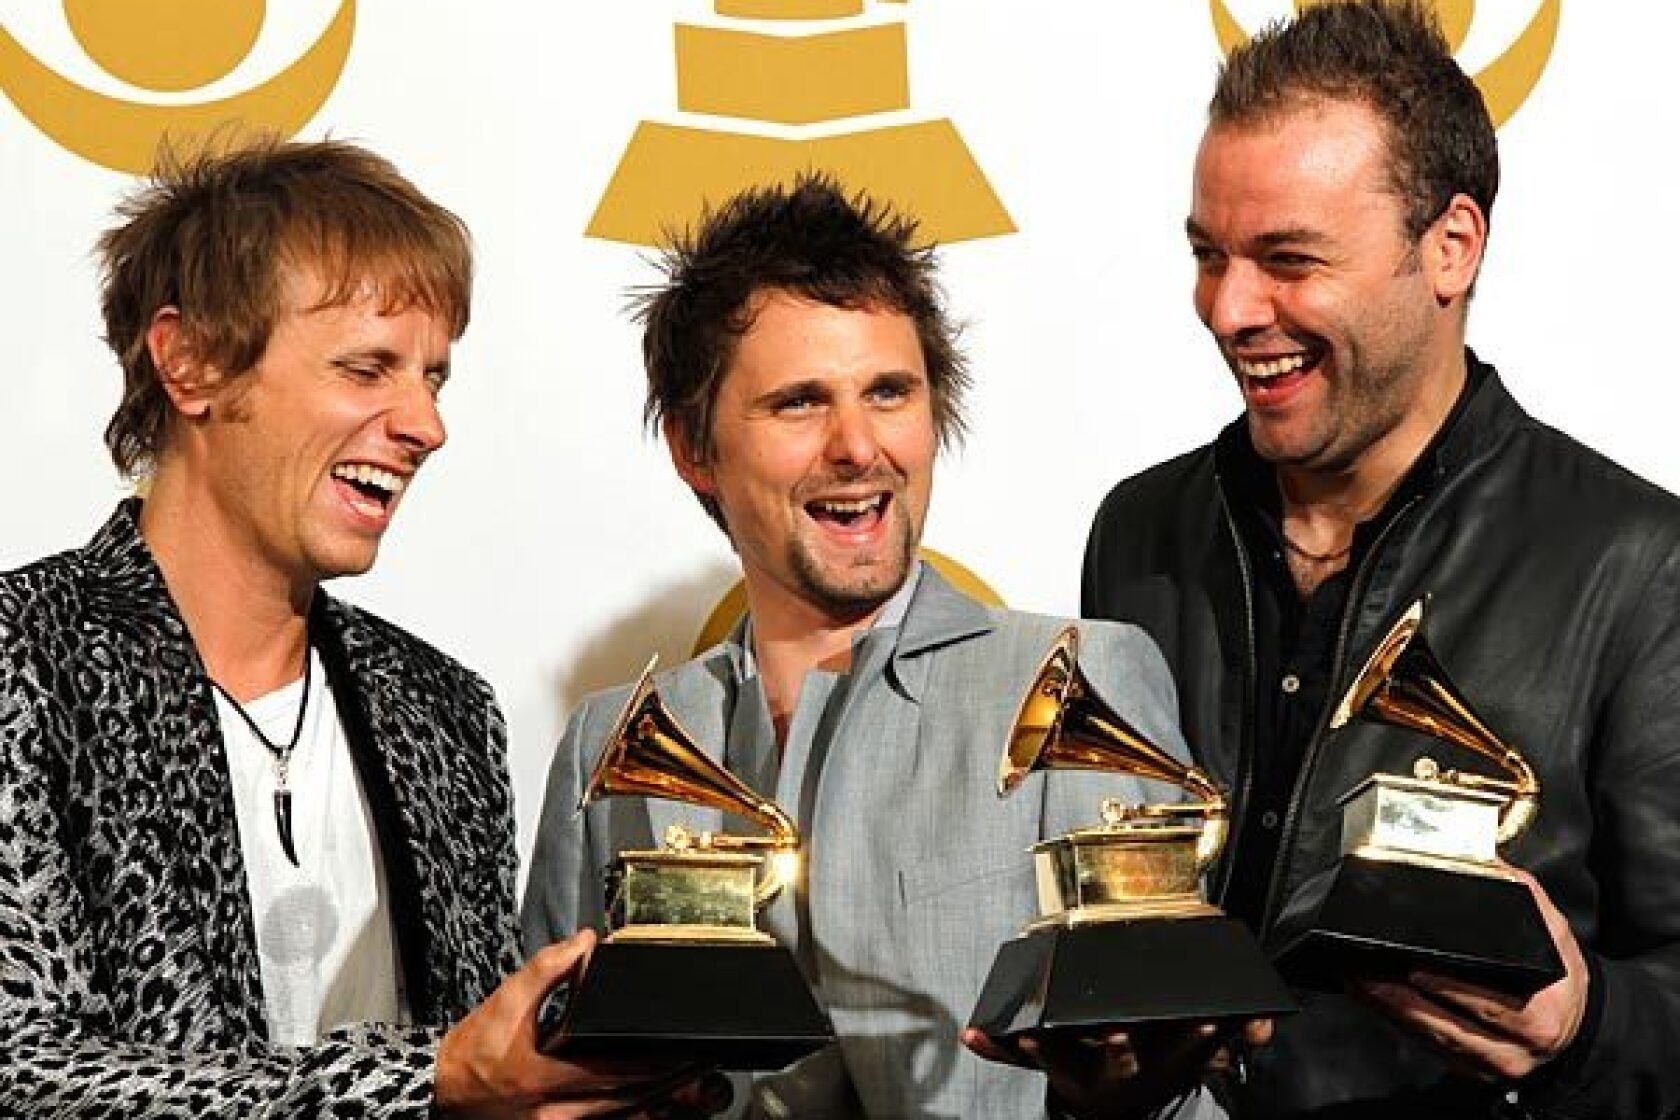 Grammy Awards 2011: Winners and nominees for 53rd Grammy